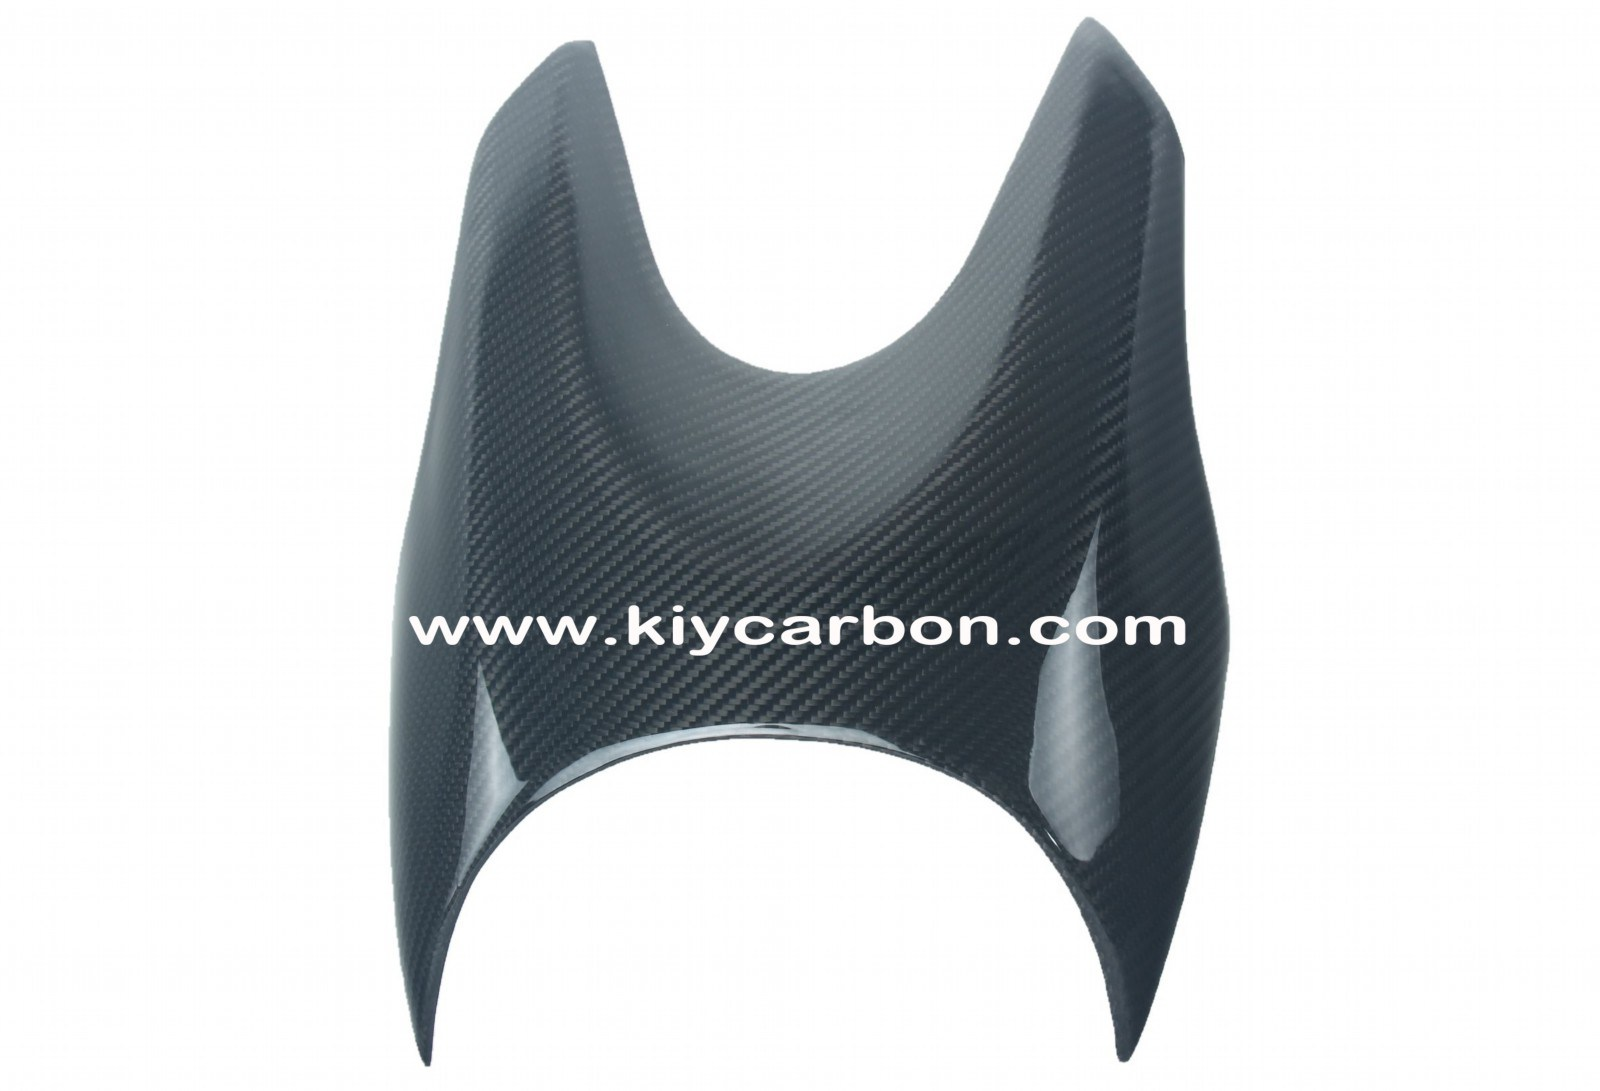 Motorcycle Carbon Part Front Headlight Fairing for Ducati Diavel